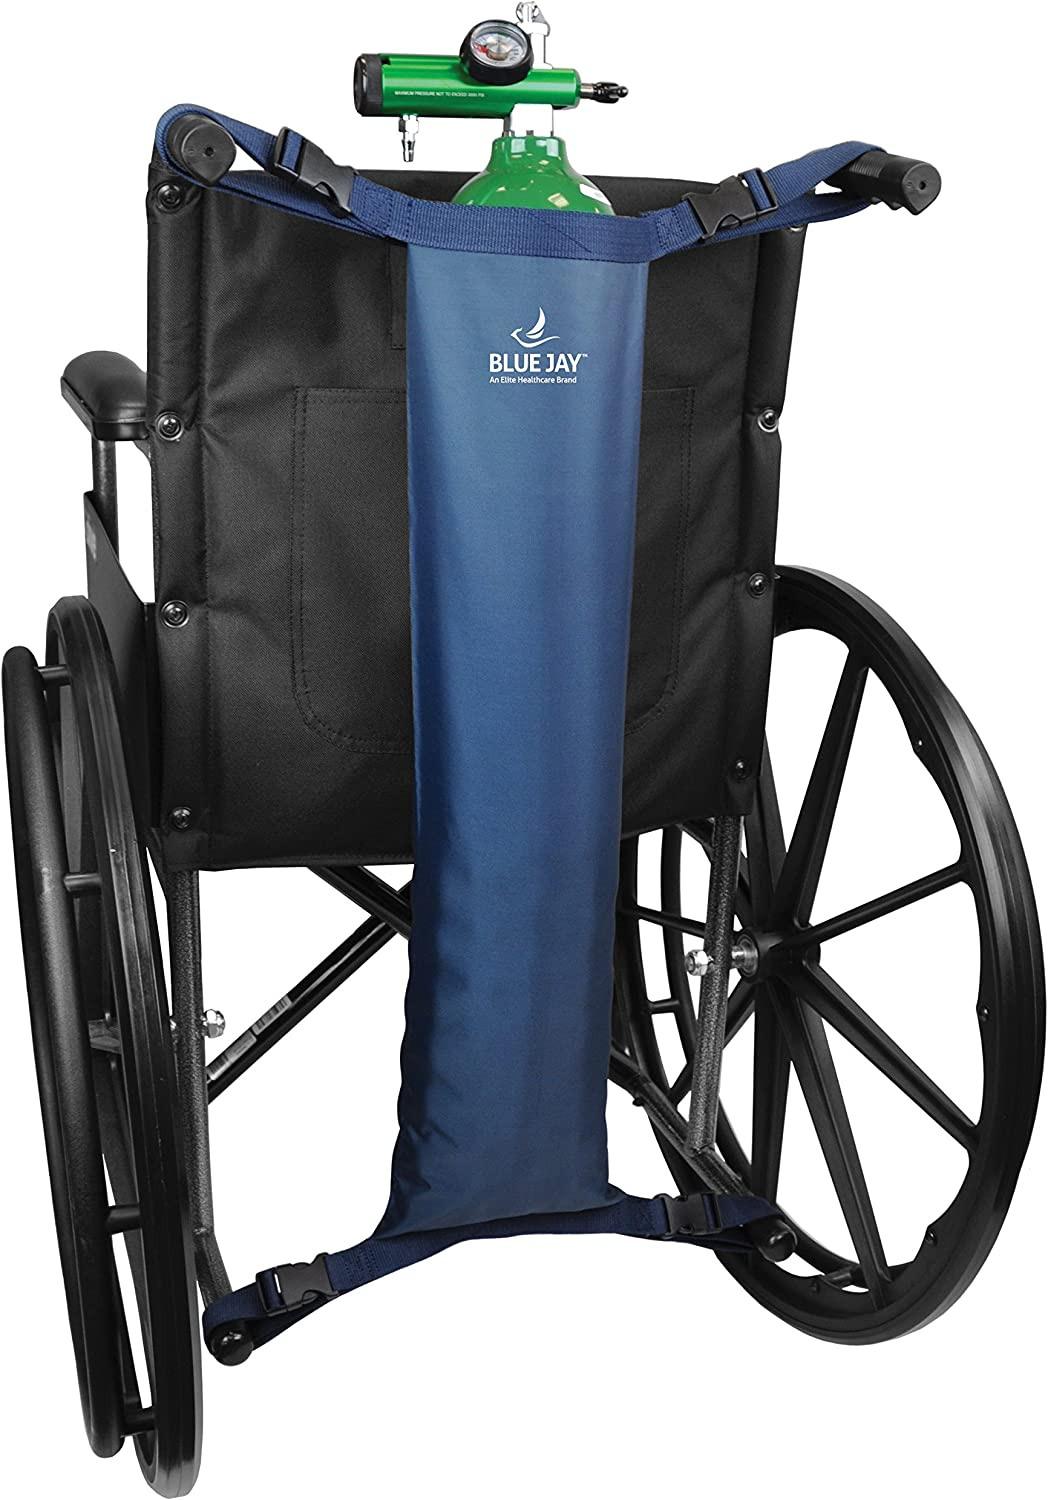 Blue Jay An Elite Healthcare Brand Hold My Tank Oxygen Tank Bag for Fits Any Wheelchair| Easy-to-Adjust Quick Release Buckles with Extra Long Straps | Waterproof Nylon Mask | Respiratory Aids: Health & Personal Care